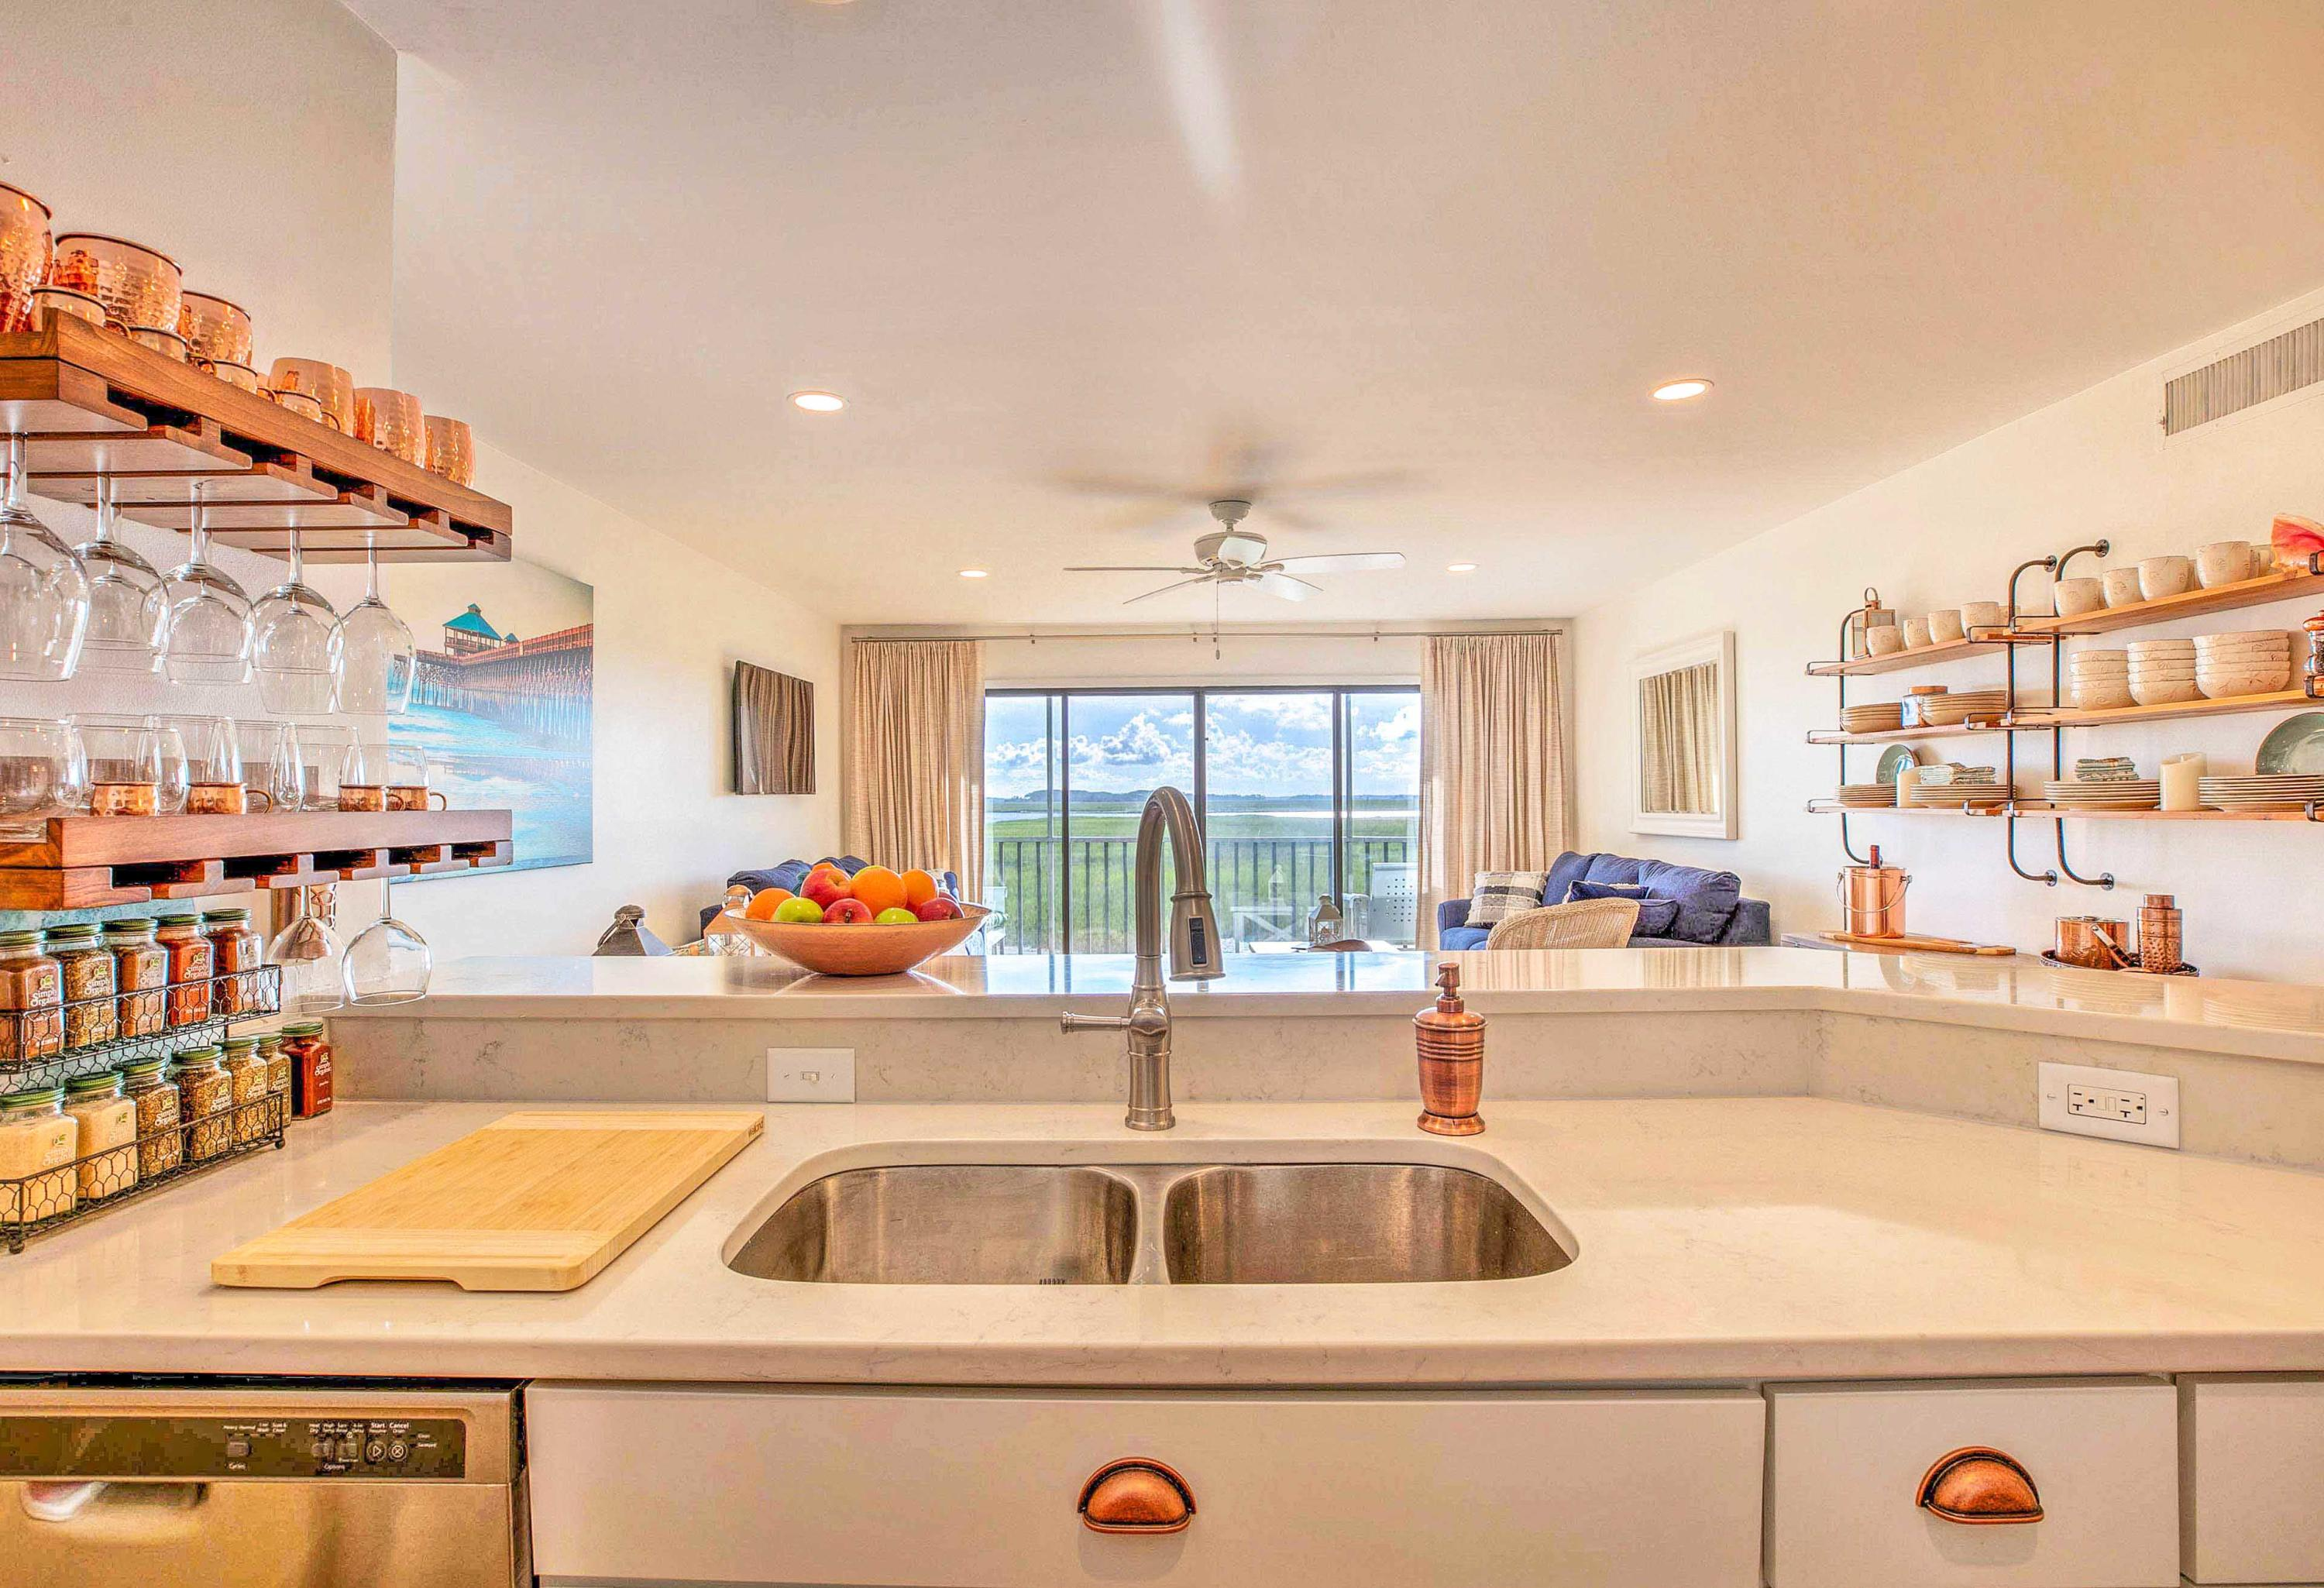 Mariners Cay Homes For Sale - 93 Mariners Cay, Folly Beach, SC - 38